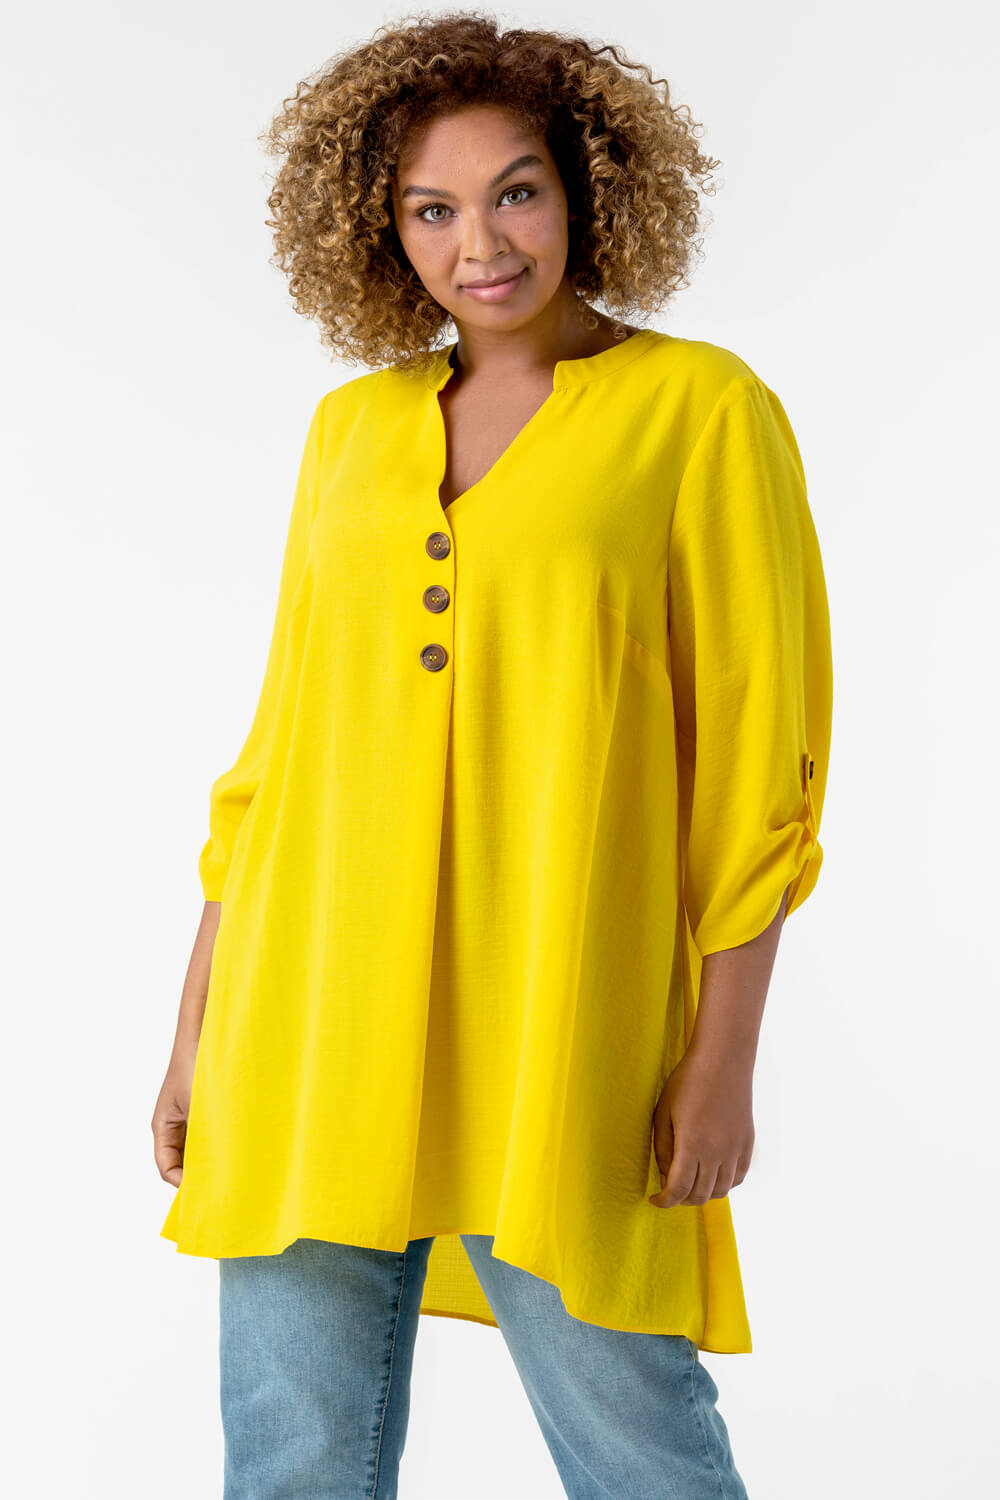 Roman Originals Curve Button Detail Tunic Top in Yellow